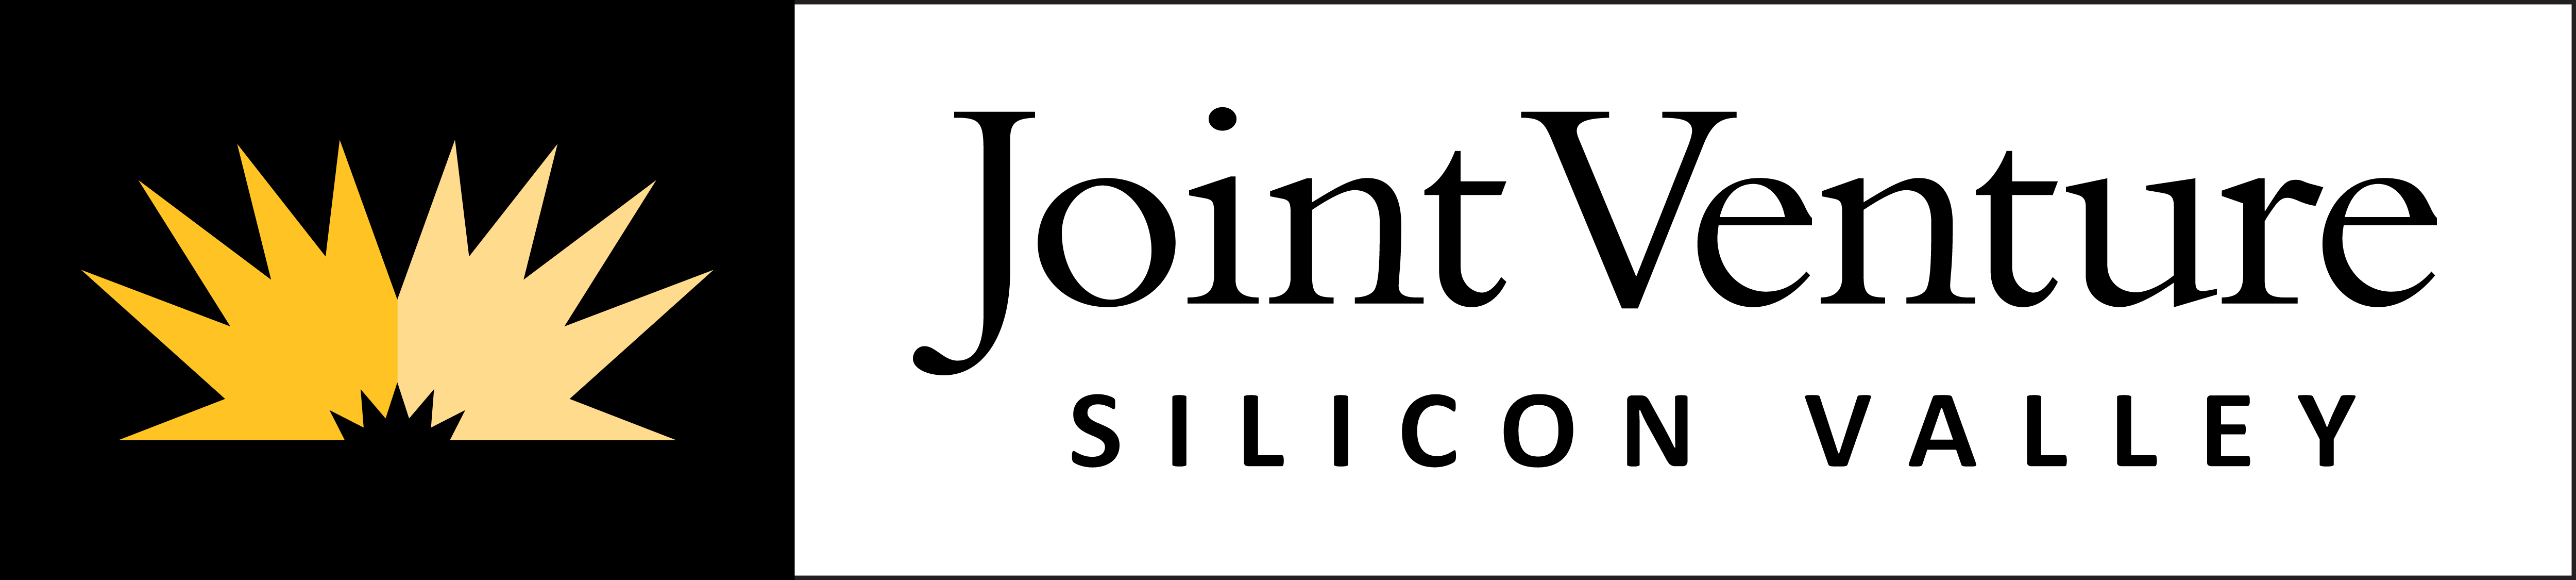 Image result for joint venture silicon valley logo